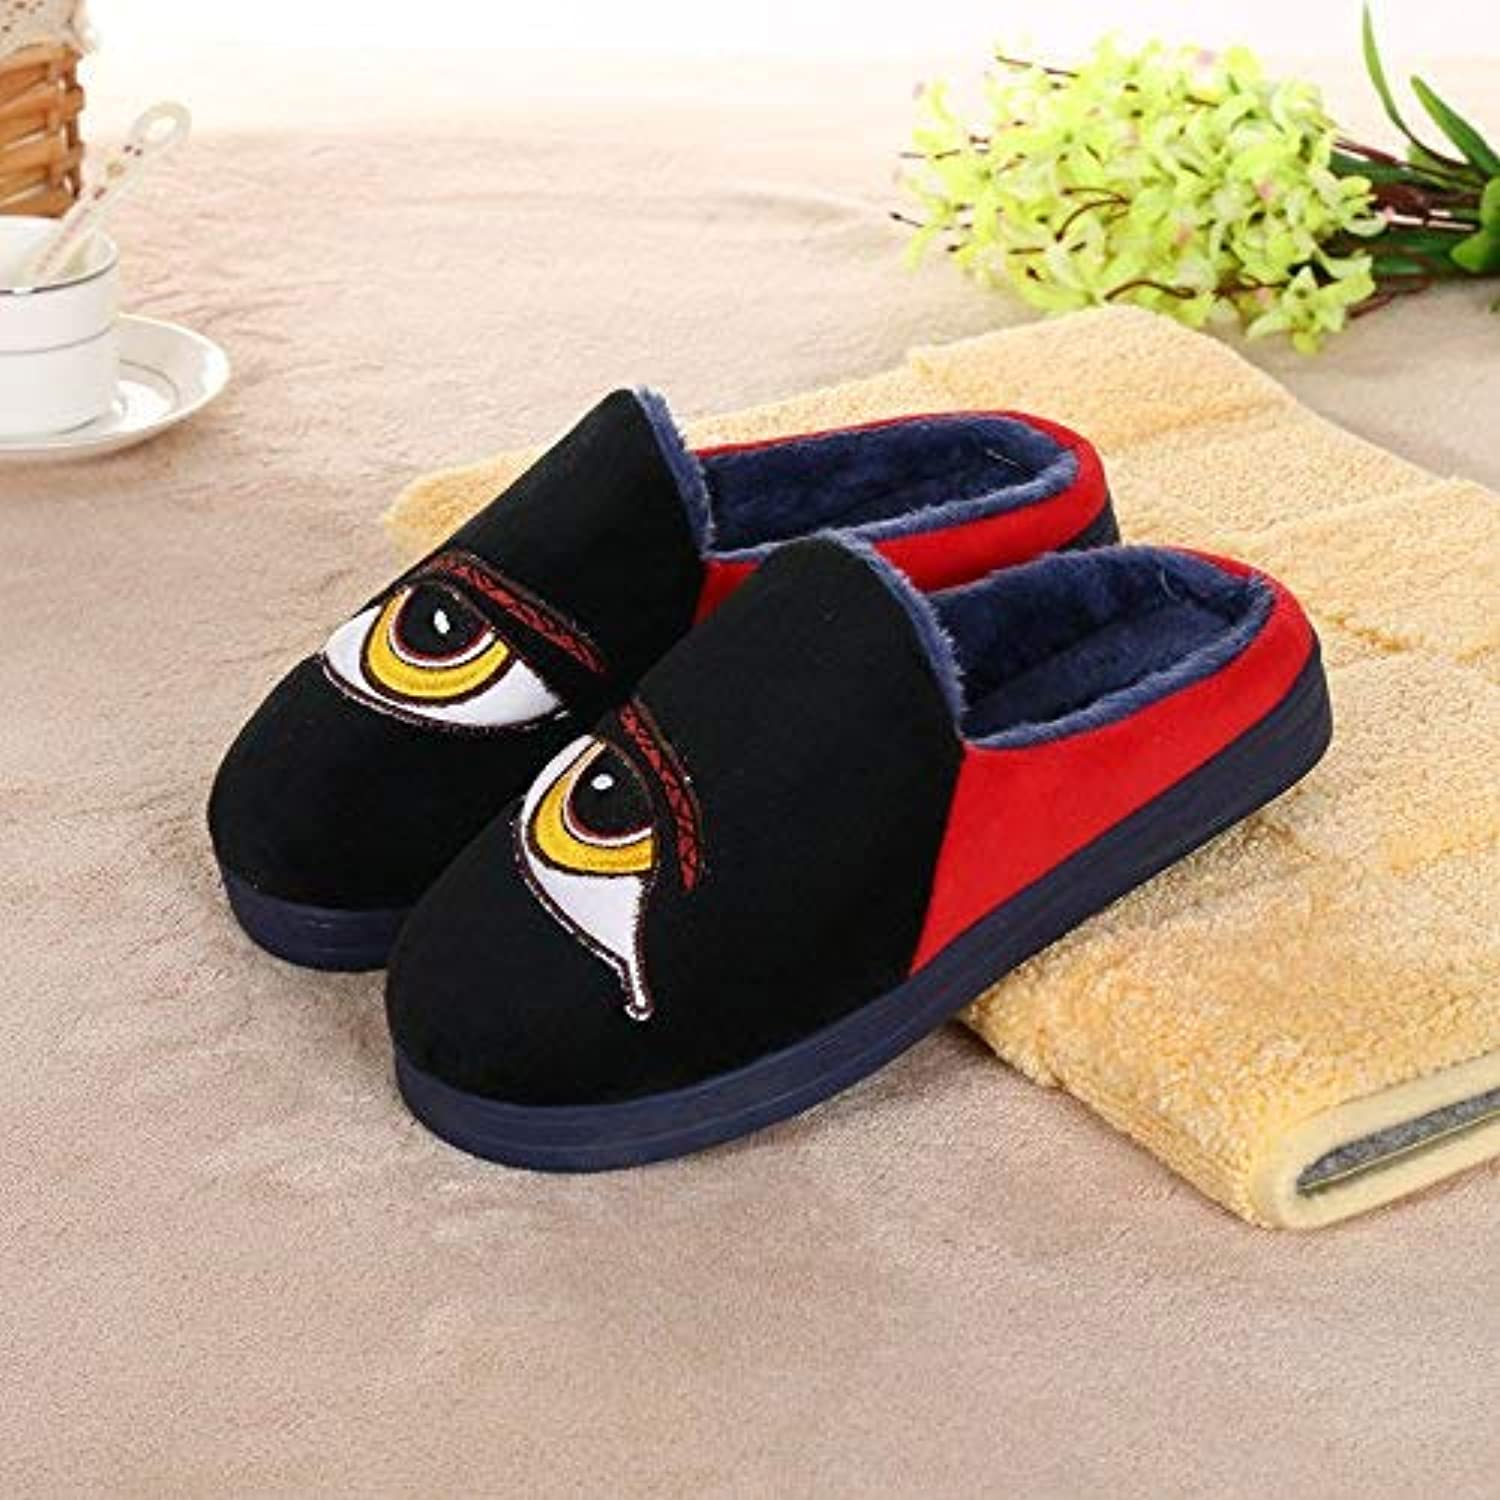 JaHGDU Casual Fall and Winter Warm Cotton Slippers Men Slippers Black bluee Mixed color Personality Quality for Men